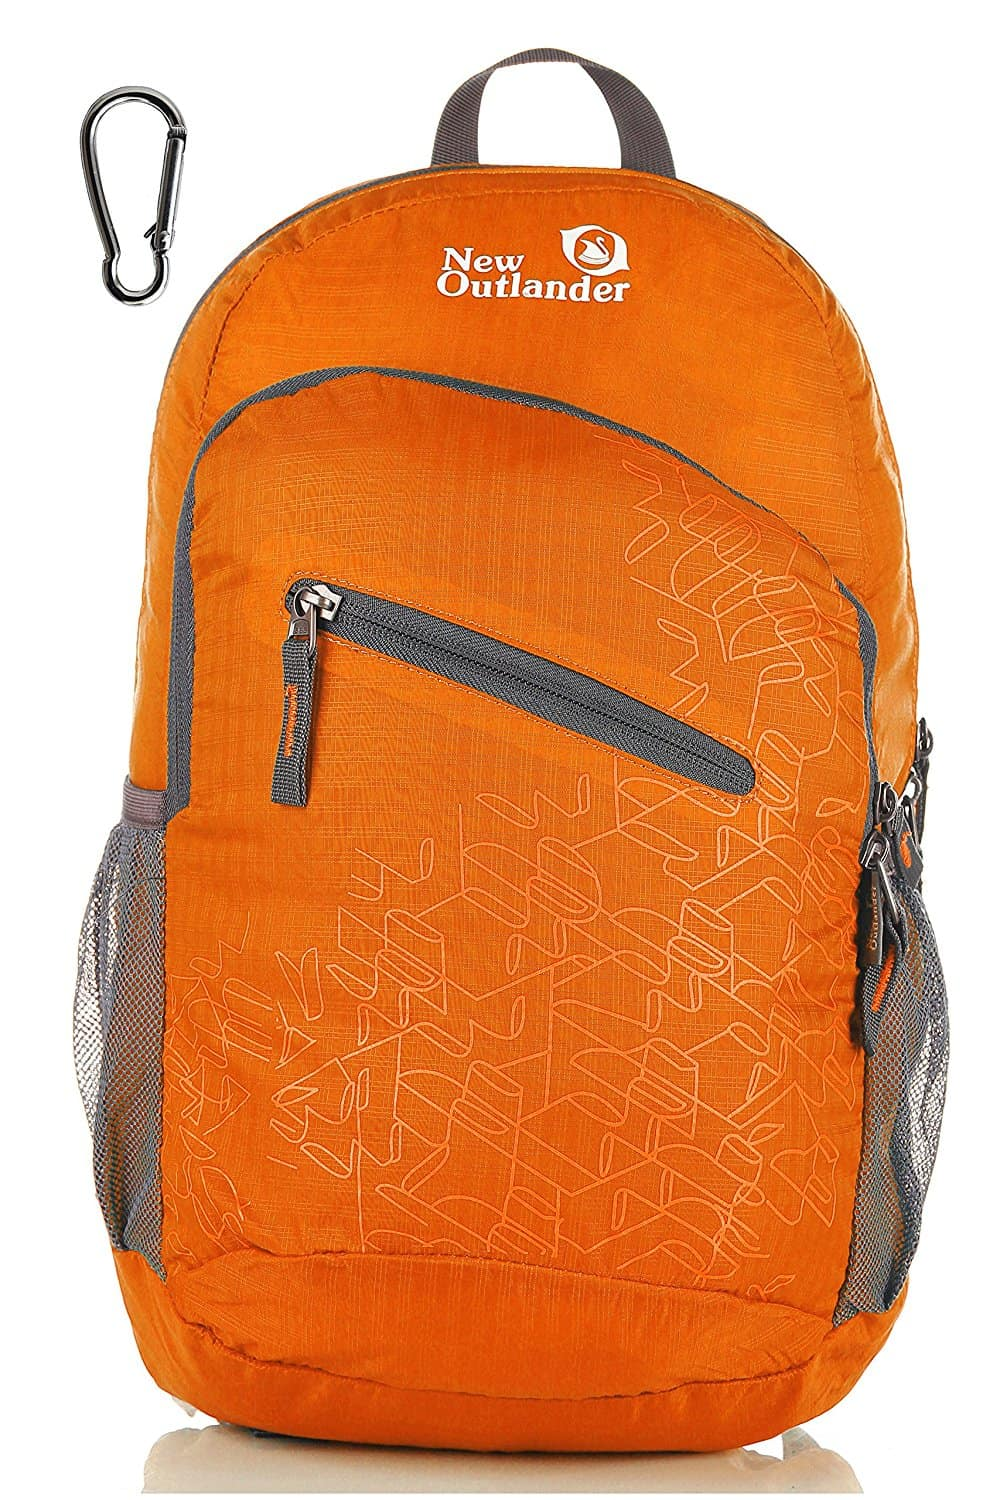 Outlander 20L/33L- Most Durable Packable Lightweight Travel Hiking Backpack Daypack